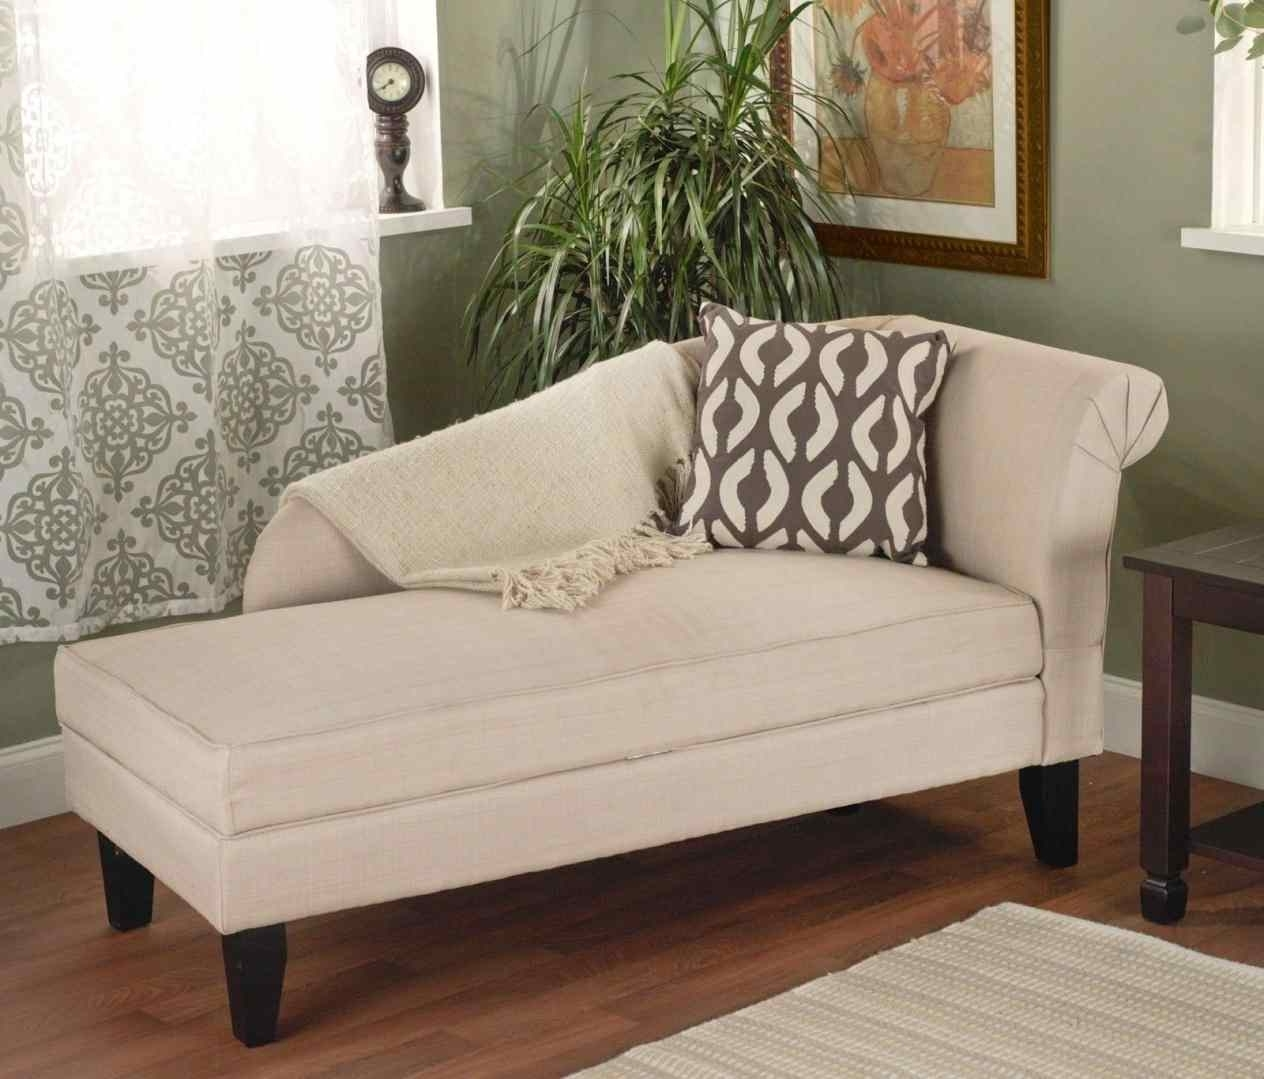 2017 Sofa : Mini Couch For Modern Bedroom Sofa Chair Wonderful Cheap S Throughout Small Chaise Lounge Chairs For Bedroom (View 1 of 15)